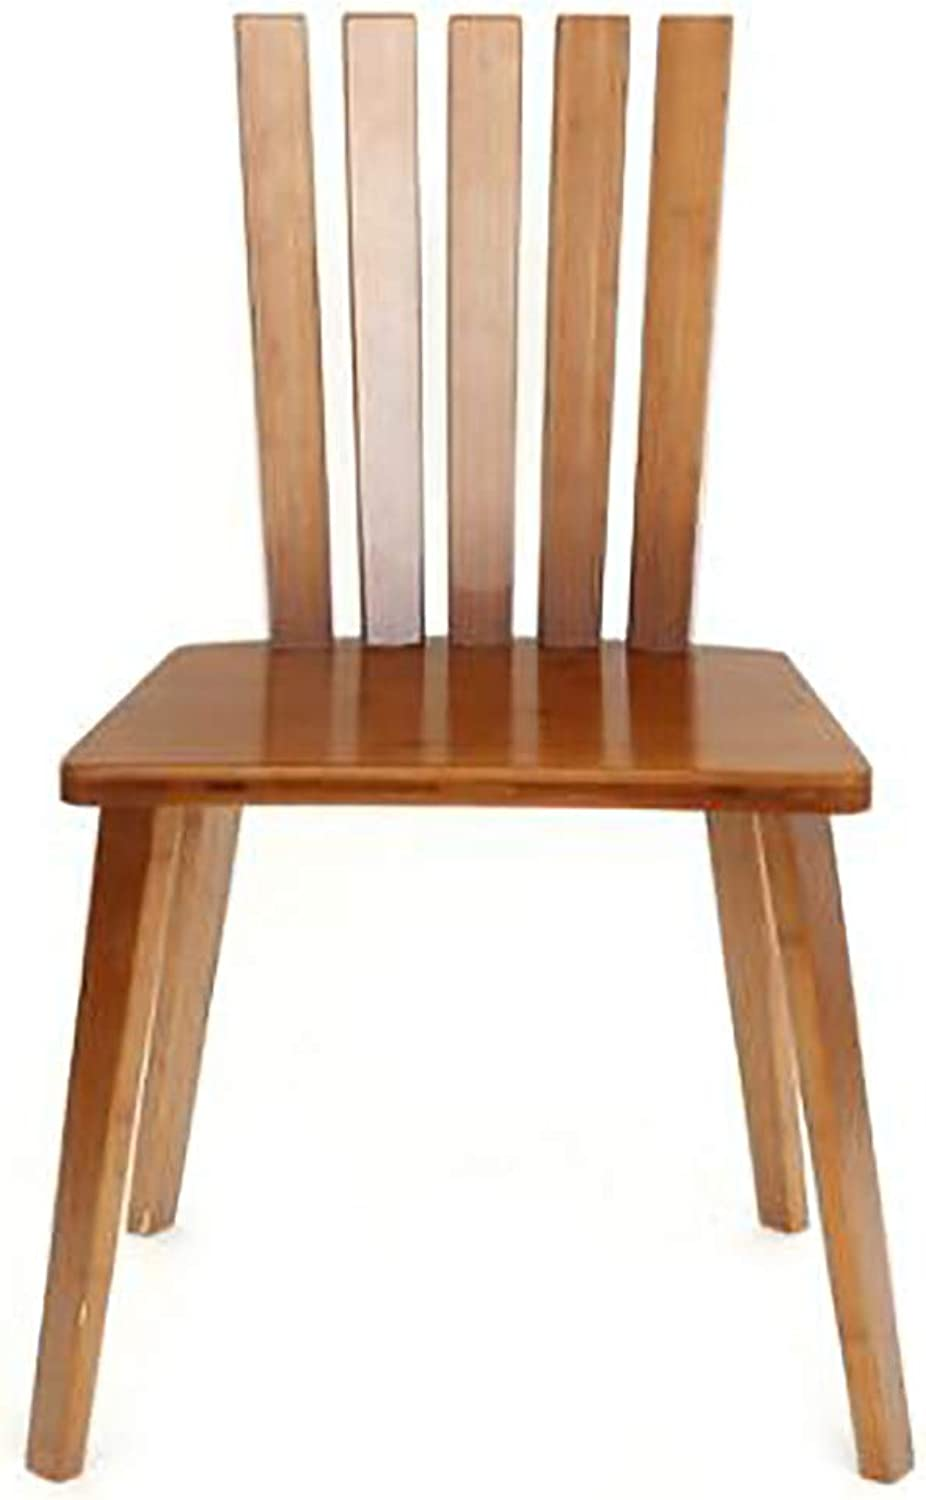 Solid Wood Dining Chair Leisure Computer Chair Home Adult Desk Chair Chair Stool Bamboo Chair